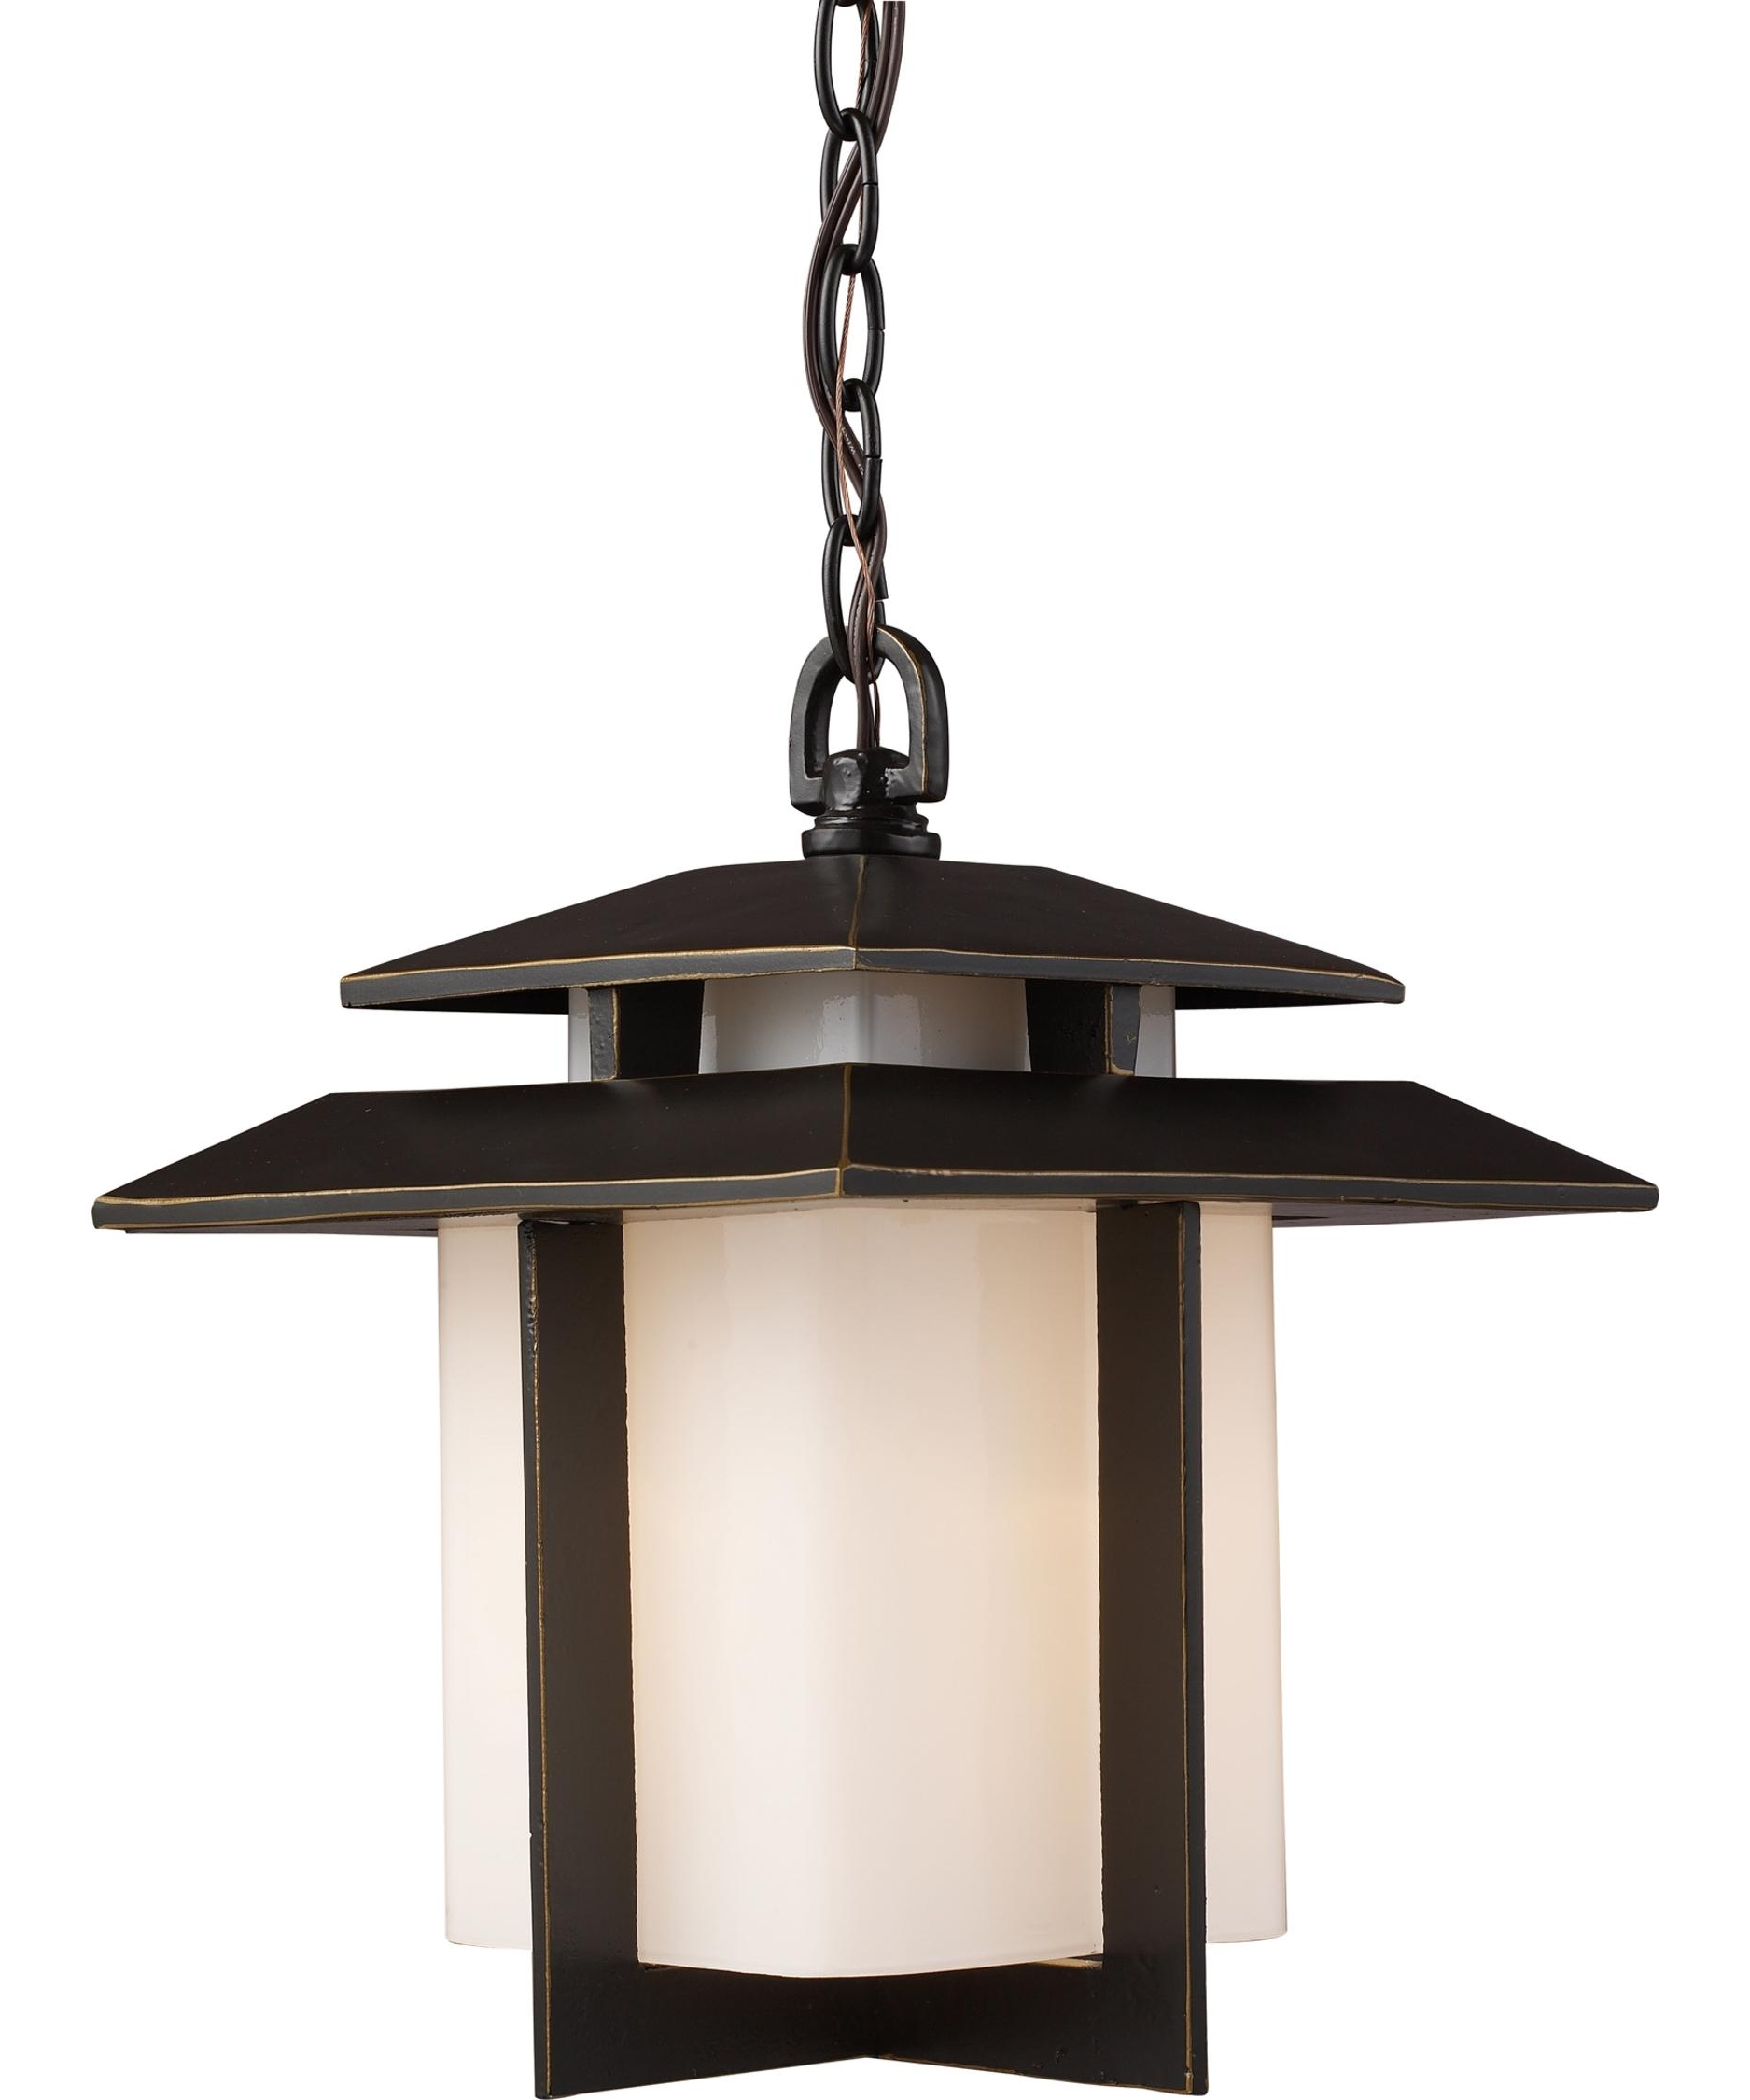 Trendy Light : Outdoor Lighting Ideas Without Electricity Exterior Fixtures Within Electric Outdoor Hanging Lanterns (View 7 of 20)